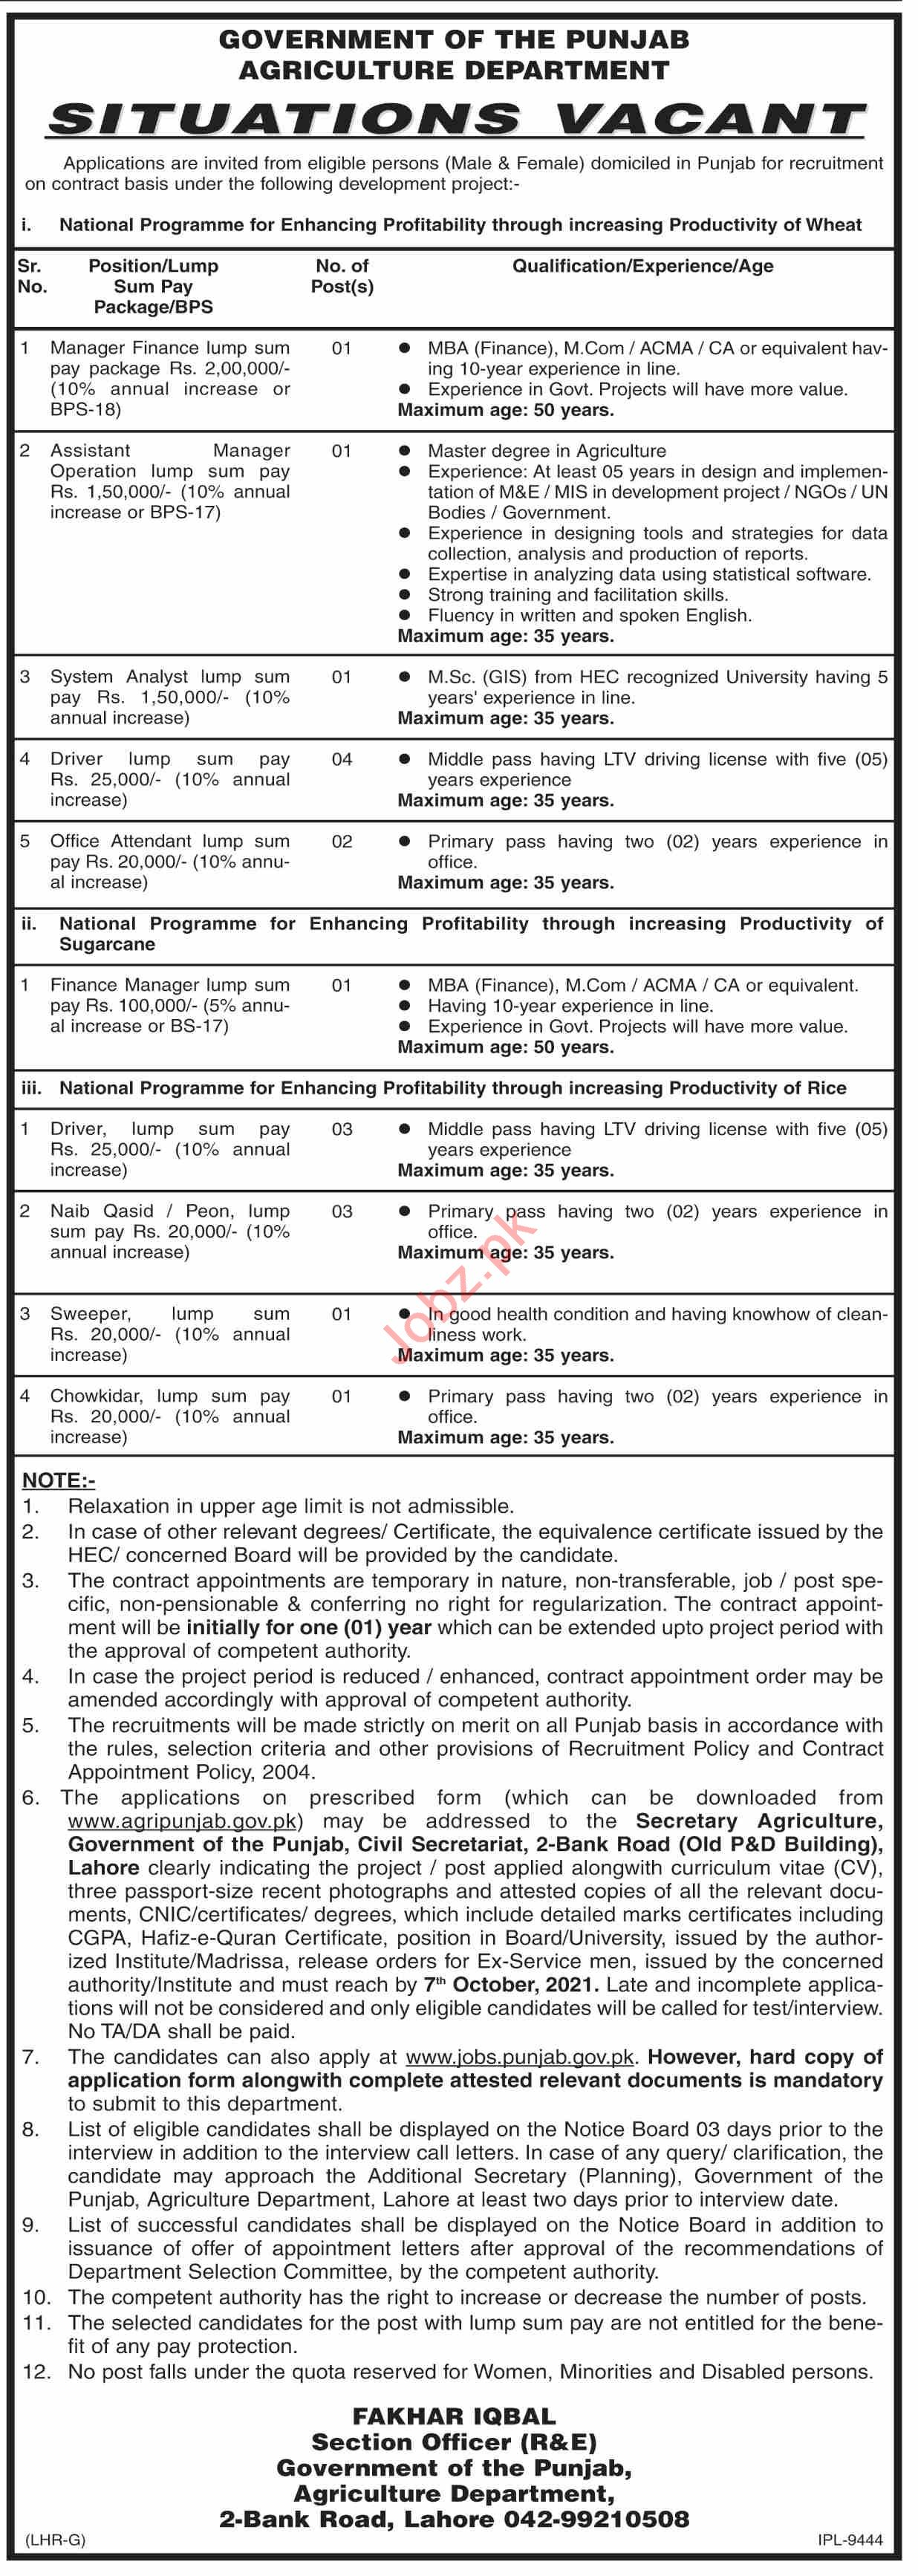 Agriculture Department Punjab Jobs 2021 for Managers